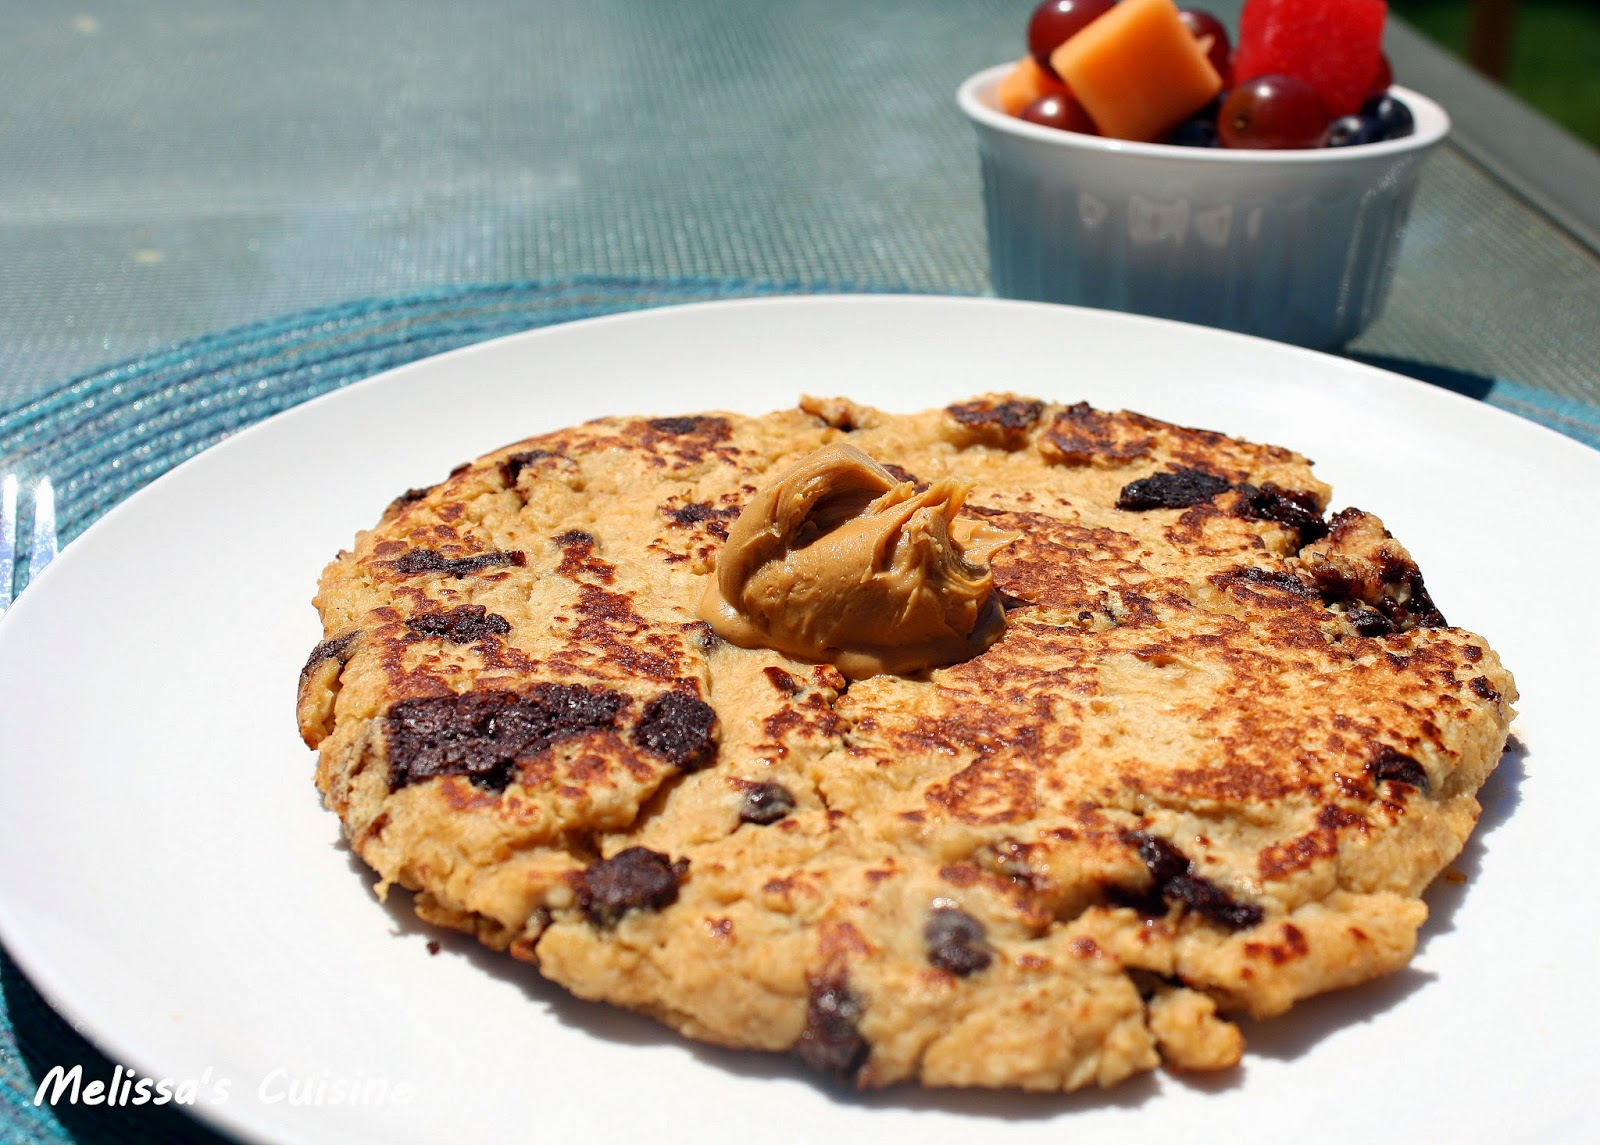 Melissa's Cuisine: Single Serving Oatmeal Pancake